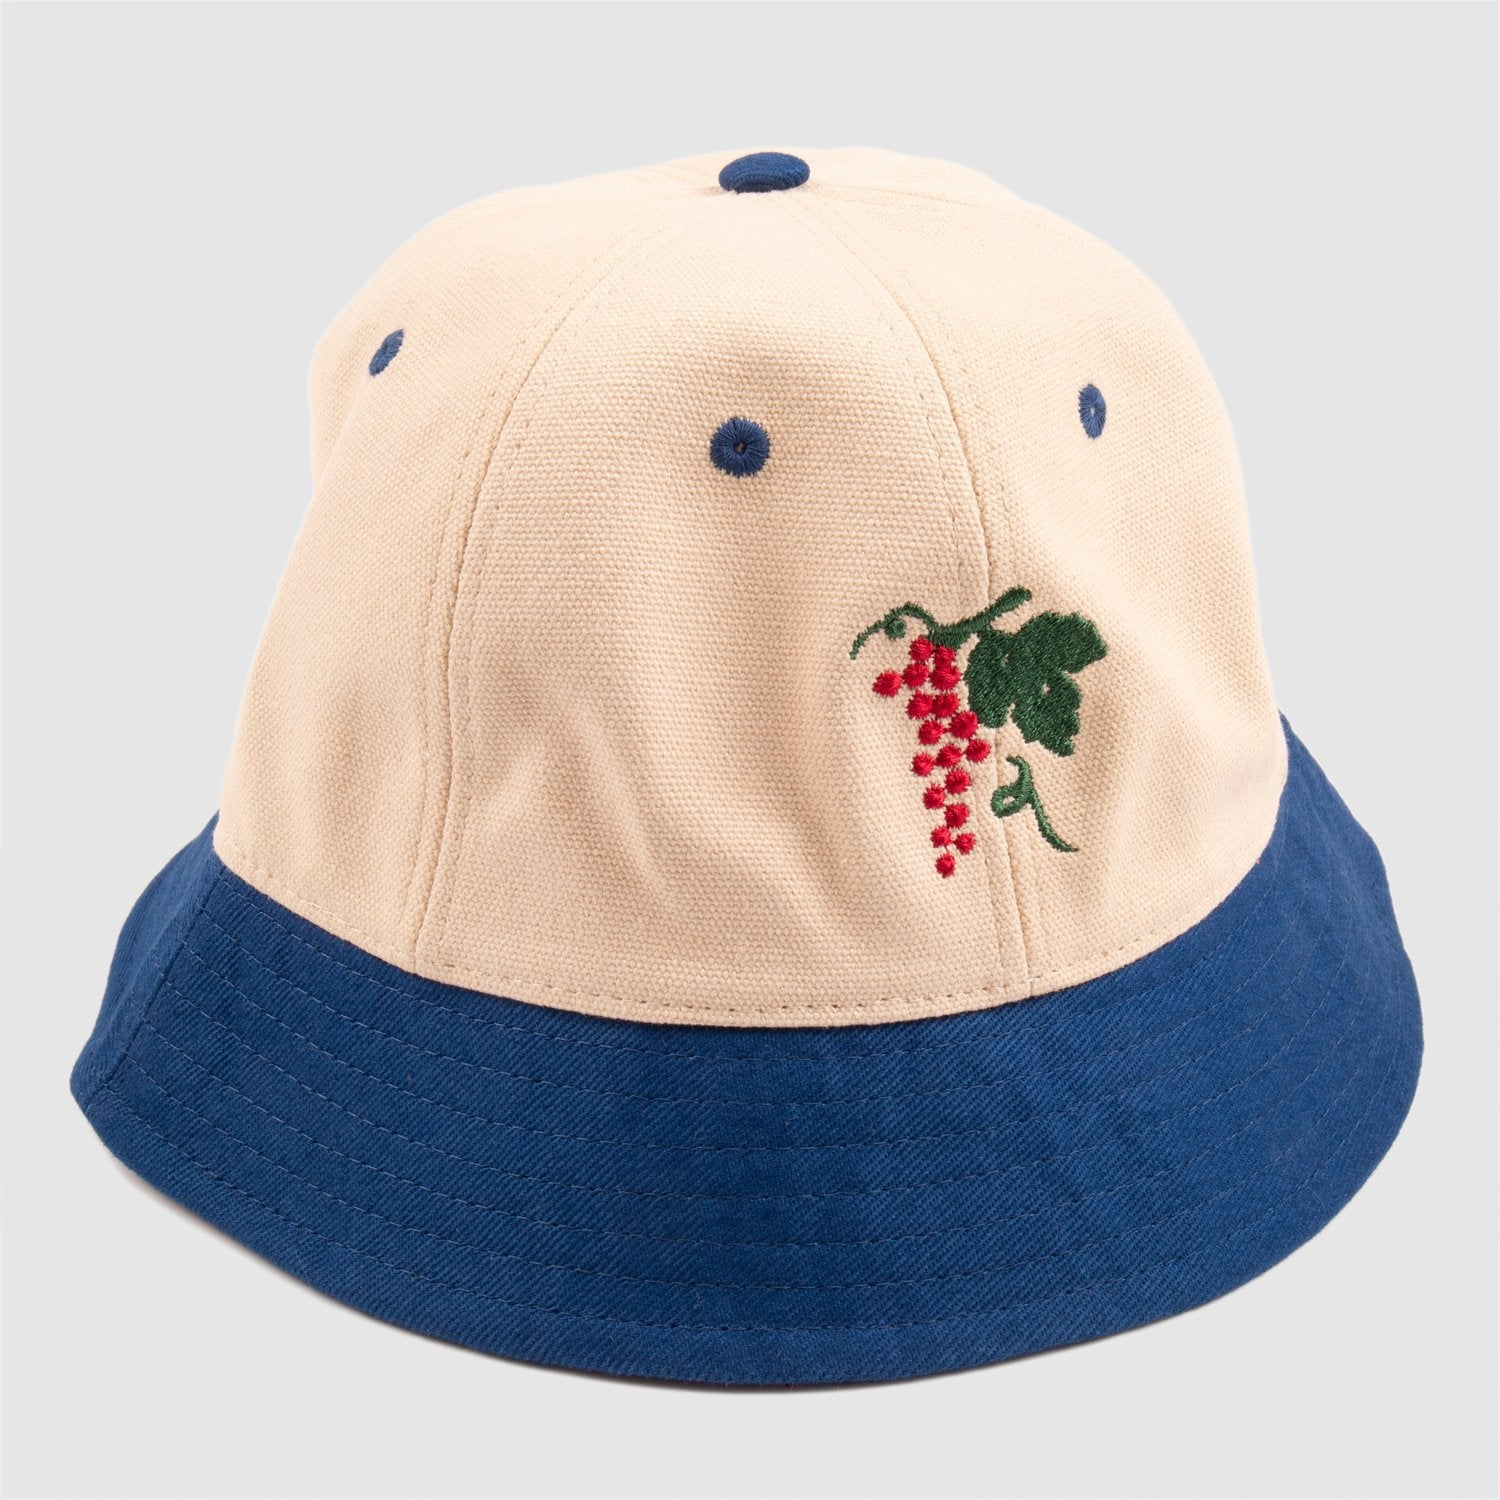 Life of Leisure 6-Panel Bucket Hat (Royal/Natural)